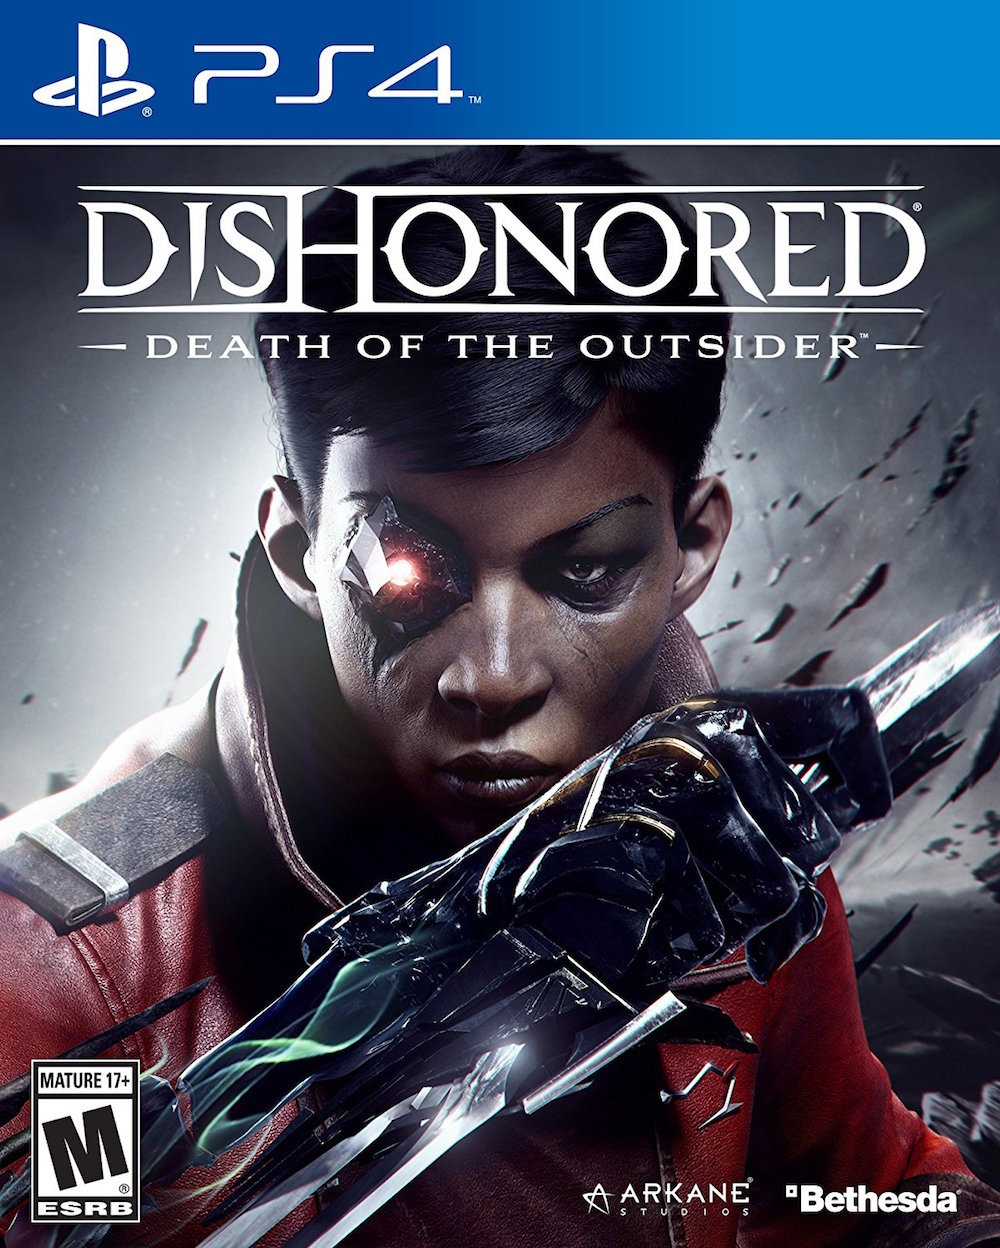 Análise de Dishonored: Death of the Outsider